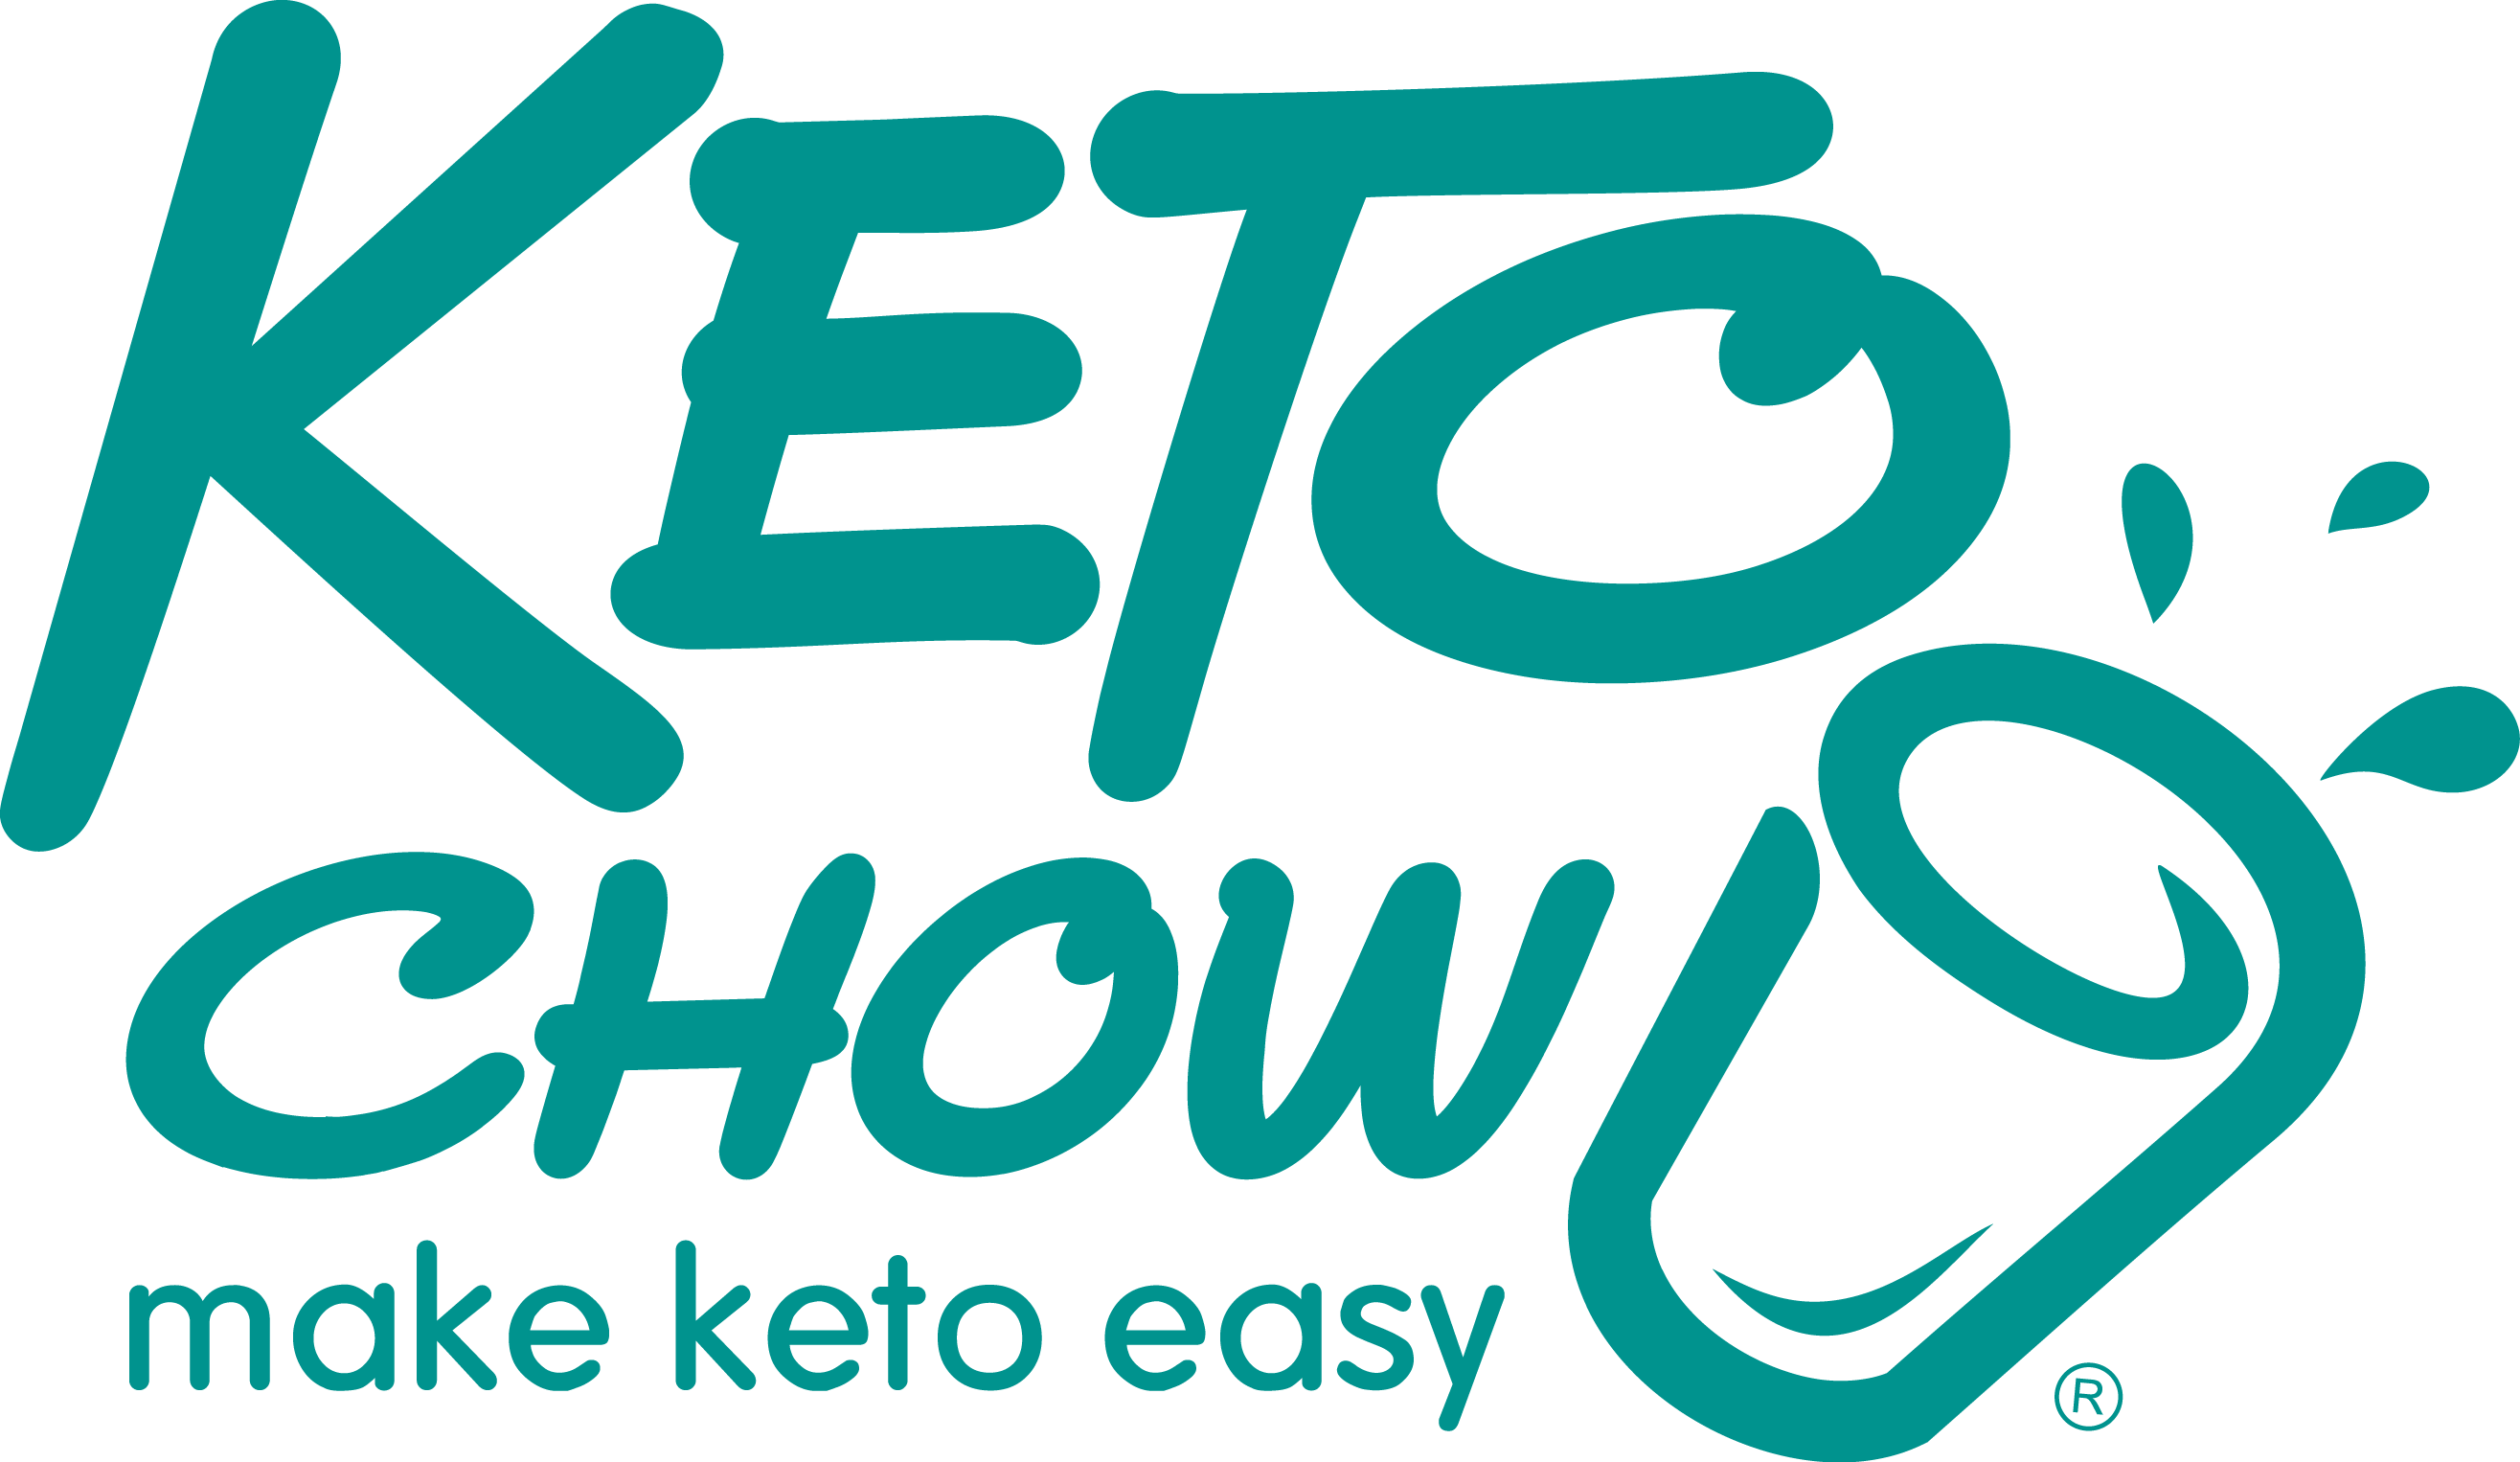 KETO CHOW logo_Final(hi-res)